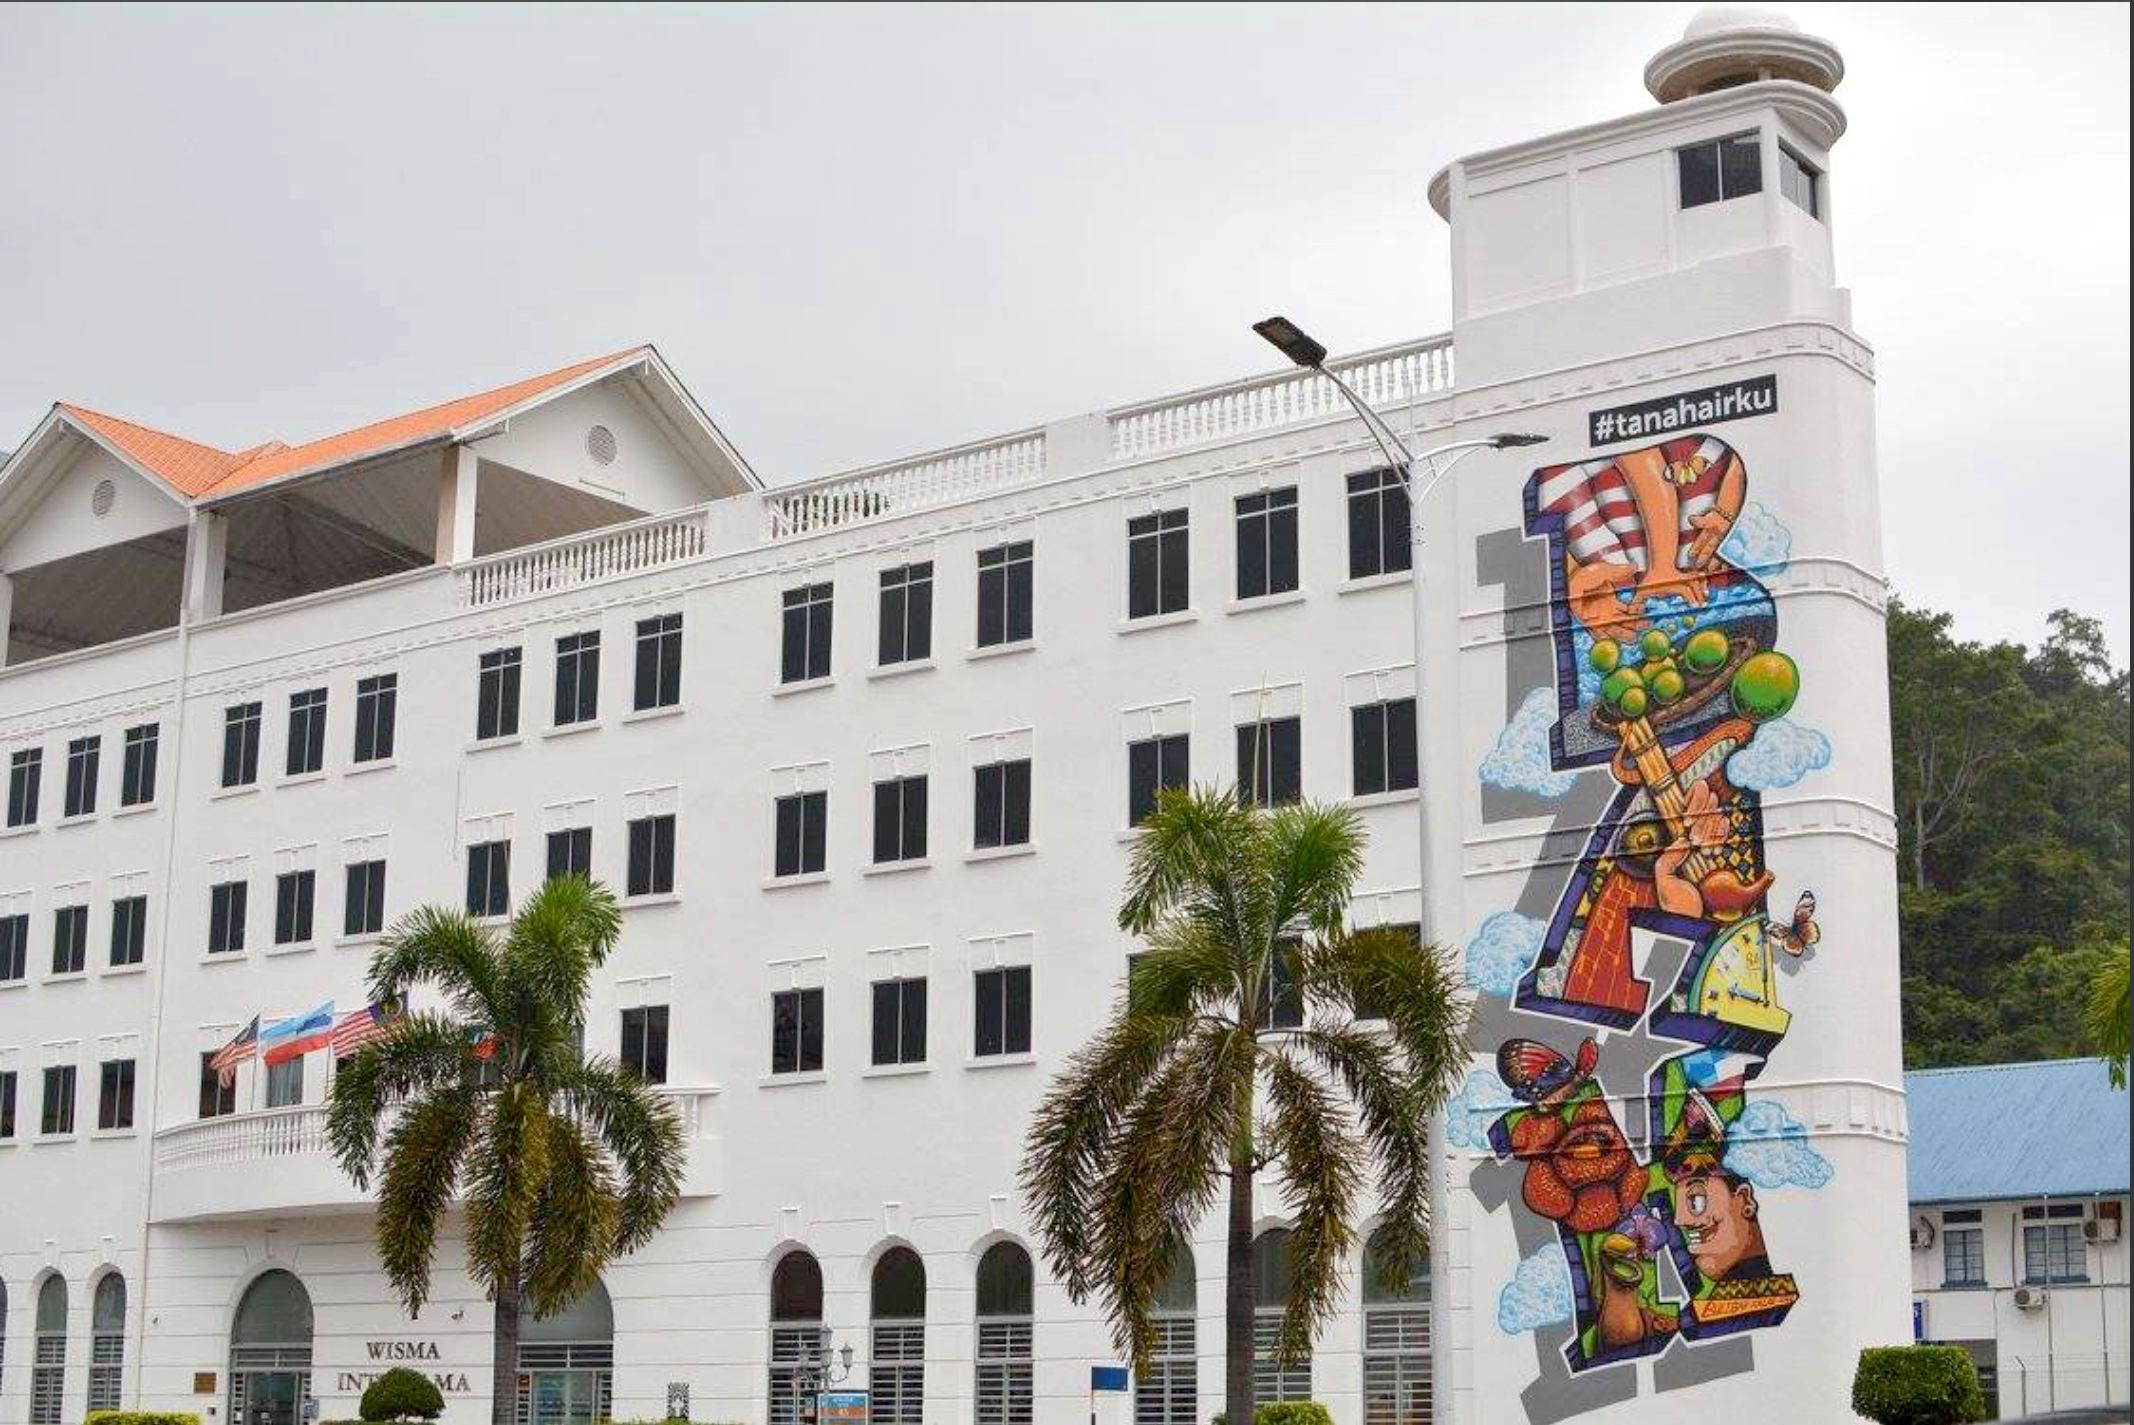 Foundation of Local Patriotism: A Kota Kinabalu street art of Cracko Art Group welcomed Juria Garcia in October 2015. It is a depiction of the Kadazan god's daughter, Huminodun, the inspiration for the Harvest Festival beauty queen on the three-storey wall of Wisma Sabah. Inspired by the colours of the Malaysian and Sabah flag, the mural instils a sense of patriotic pride and unity. This mural was painted by Harold Reagan Eswar, Kwan Thung Seng and Anddy Romeo Dulait. Another Petronas commissioned CAG mural can be seen at the facade of the Wisma Intiutama at Lorong Dewan. Set against the background of wind and clouds to strongly denote its place of origin, BAH is a colloquial word for Sabahans to express various kinds of emotions, making it a richer language.